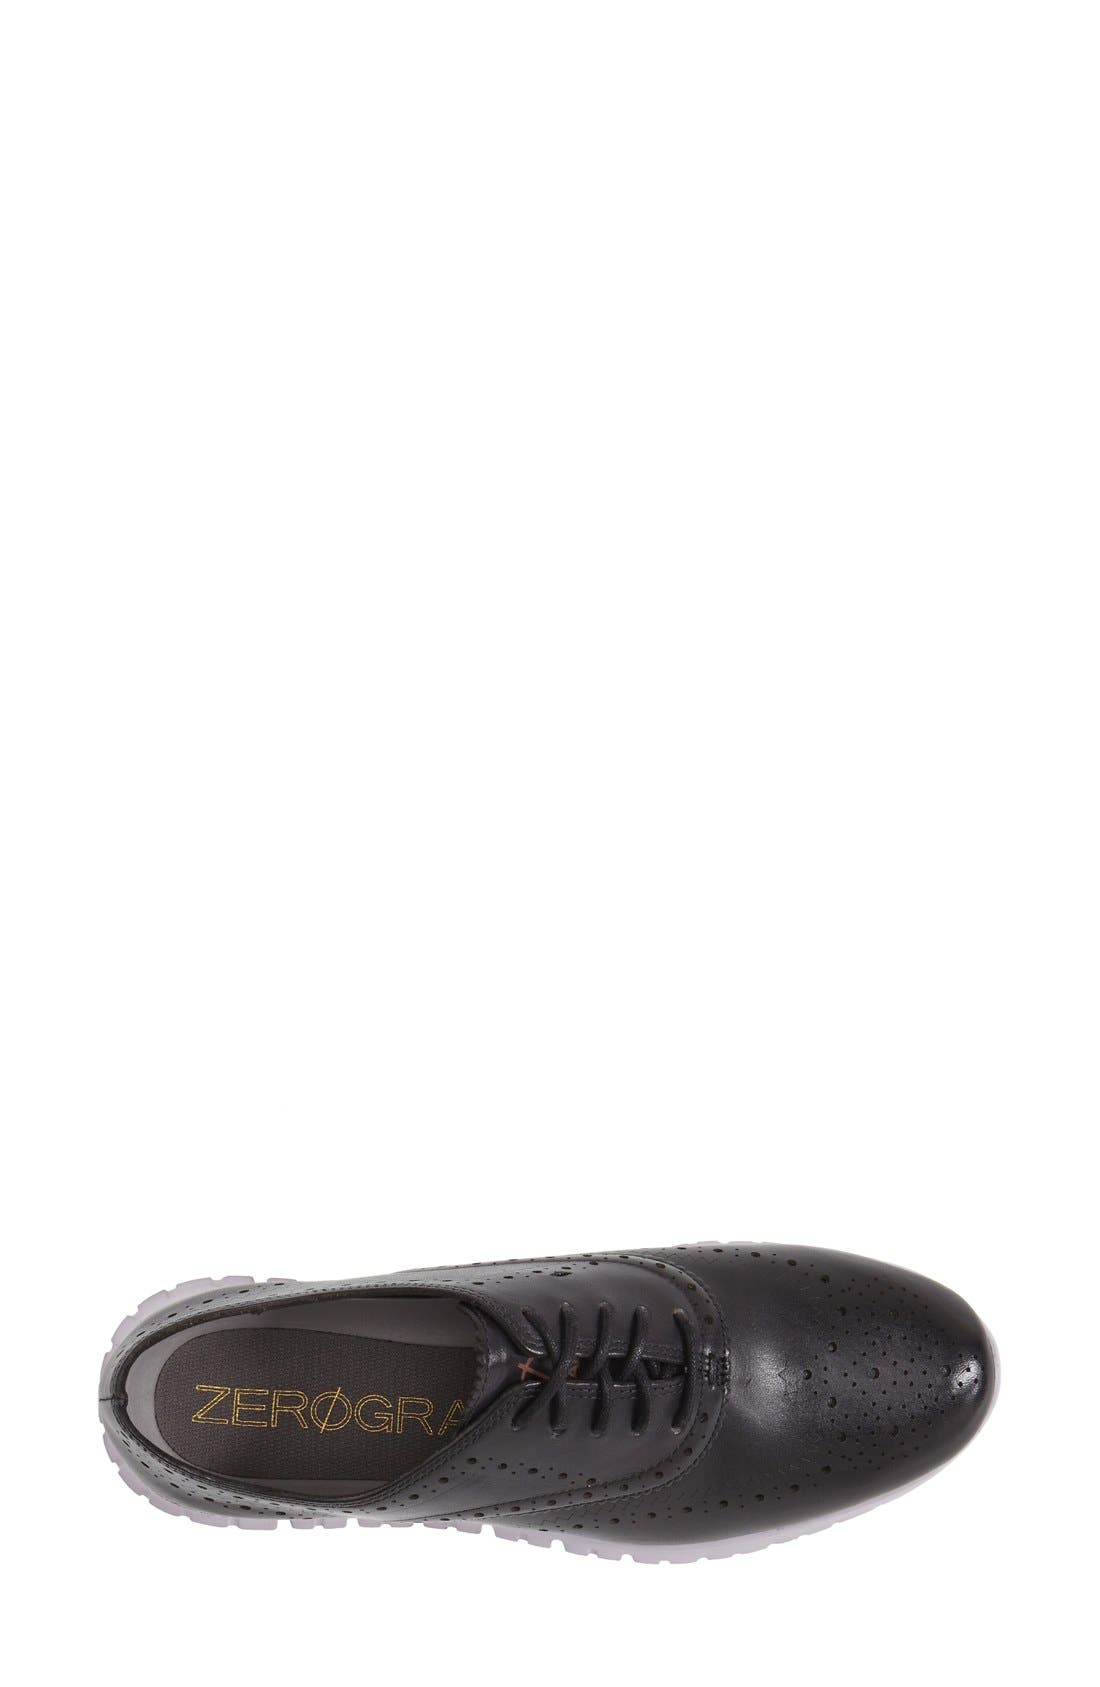 'ZeroGrand' Perforated Wingtip,                             Alternate thumbnail 66, color,